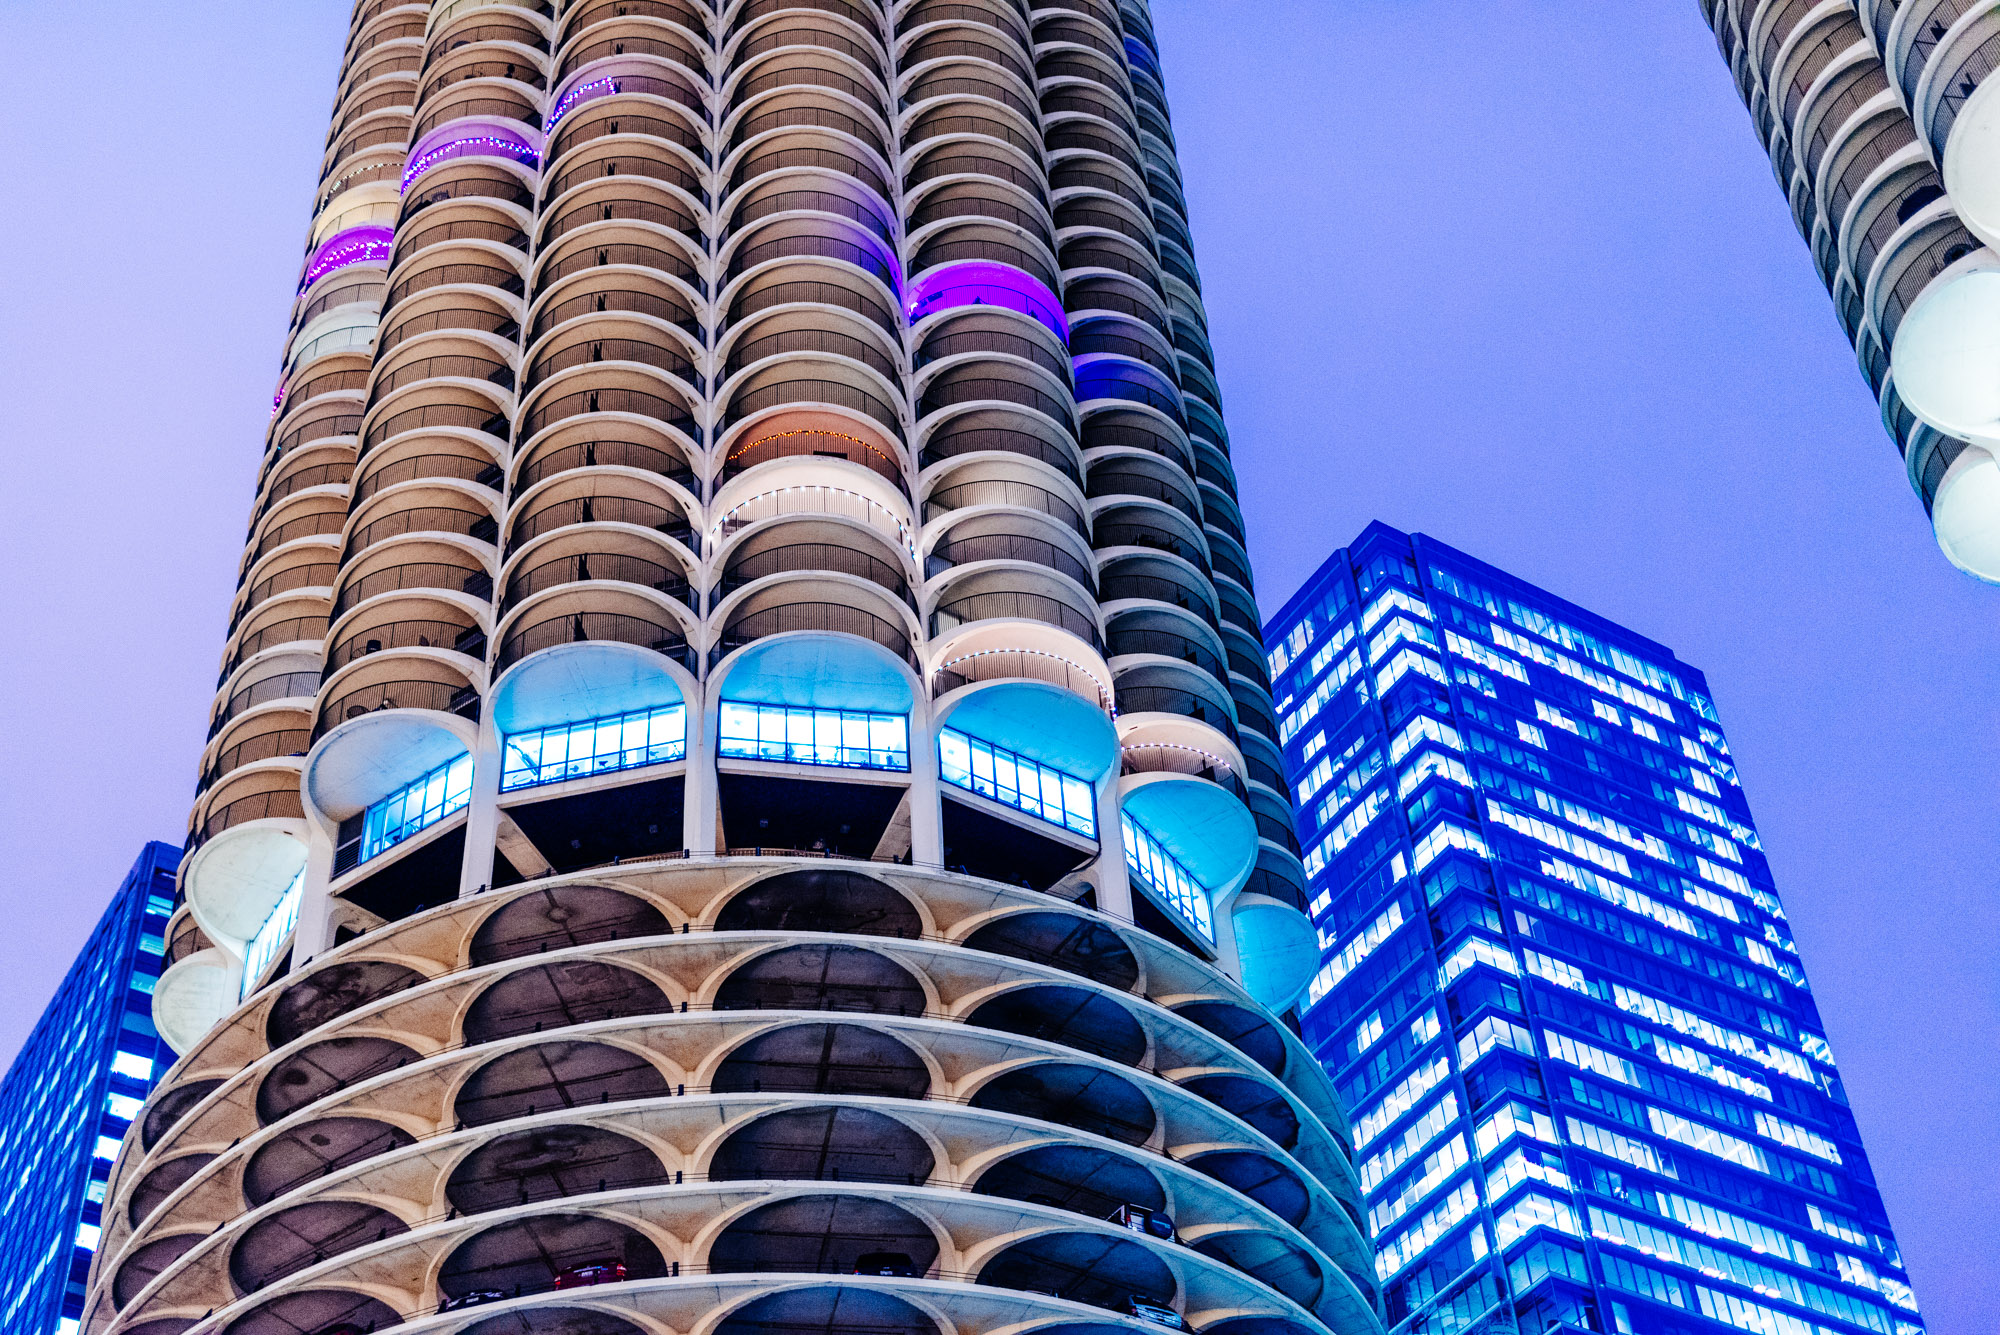 Jeff On The Road - Travel - Chicago - Chicago Architecture Found